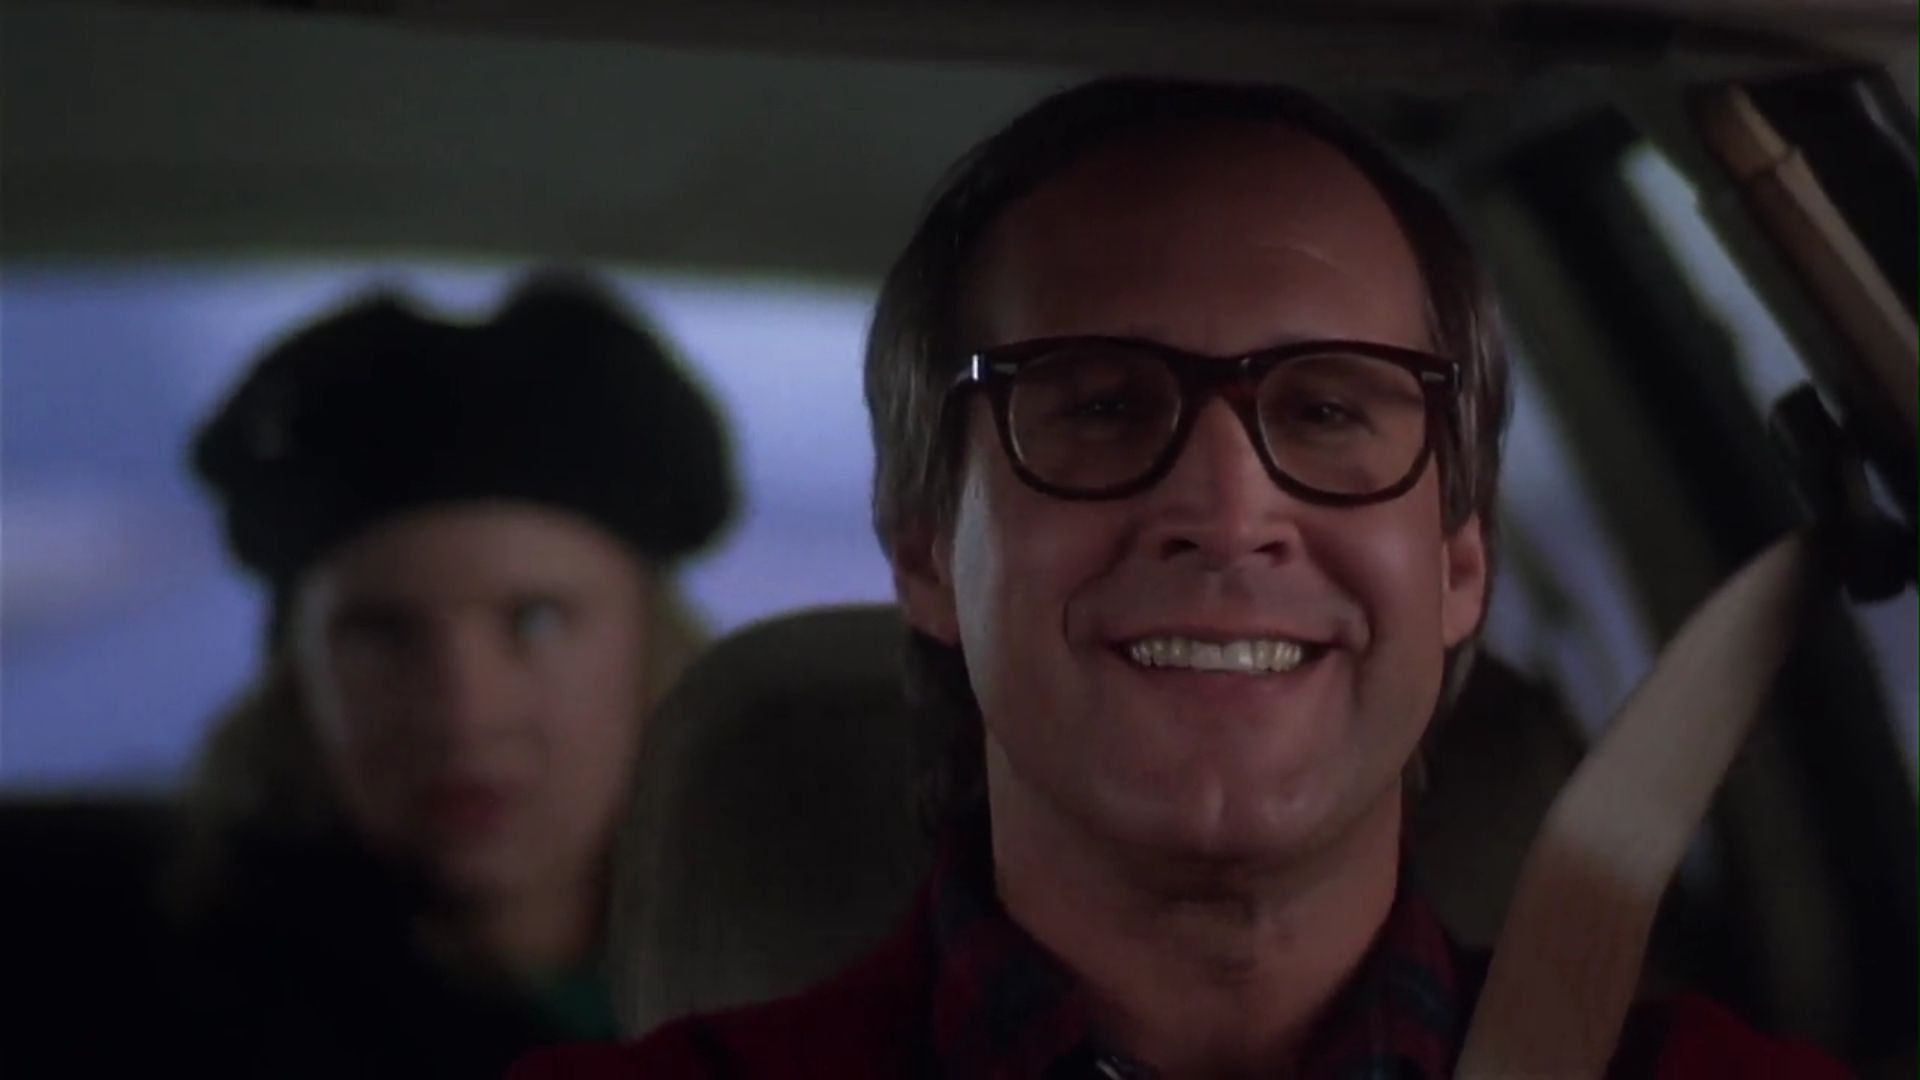 gen10 30 Things You Probably Didn't Know About National Lampoon's Christmas Vacation